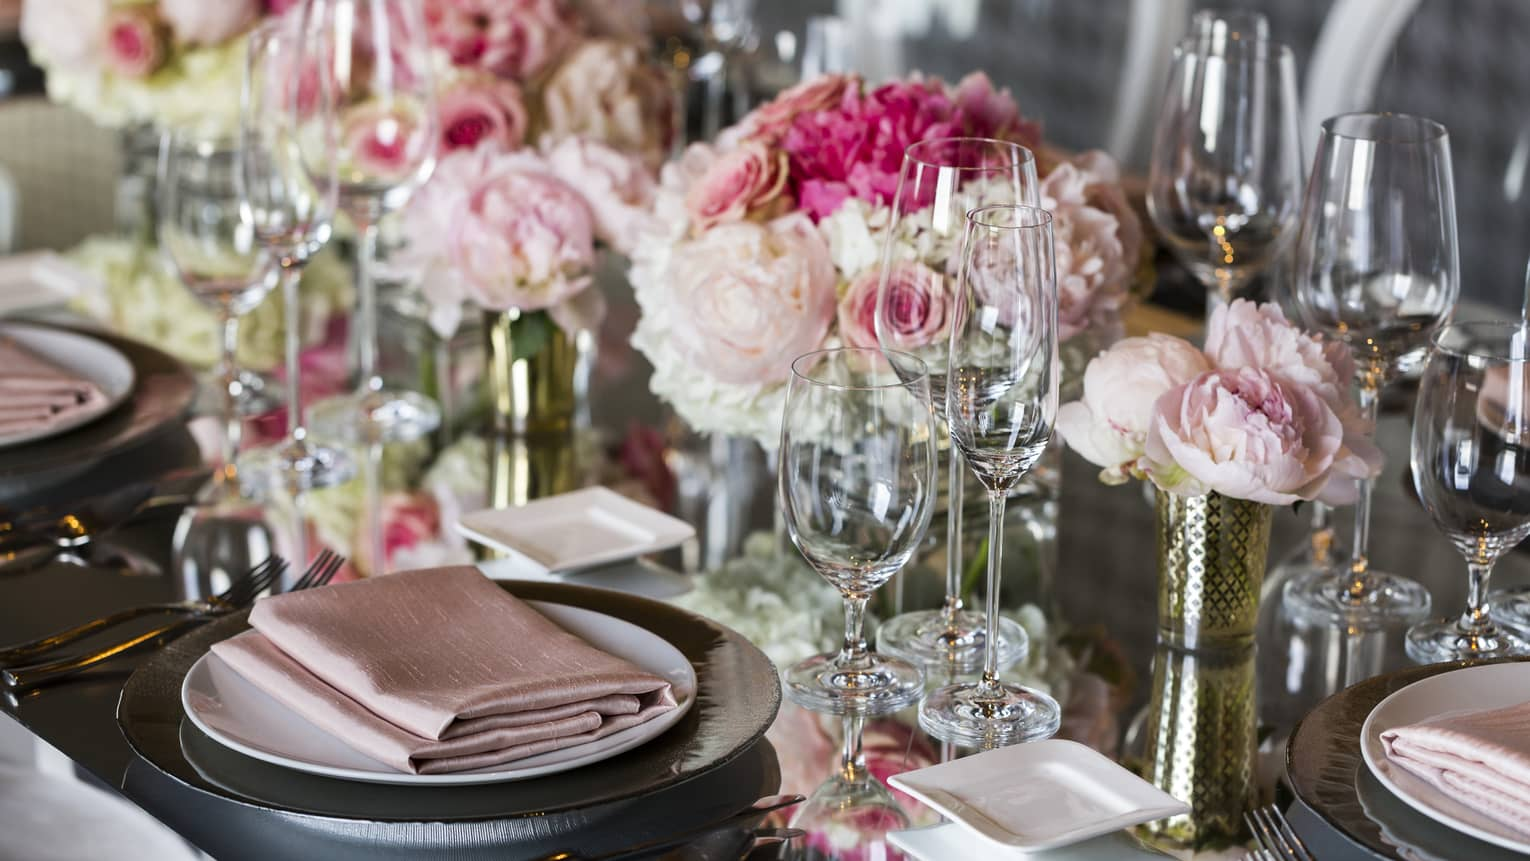 Close-up of wedding table place setting decorated with pink roses, linens